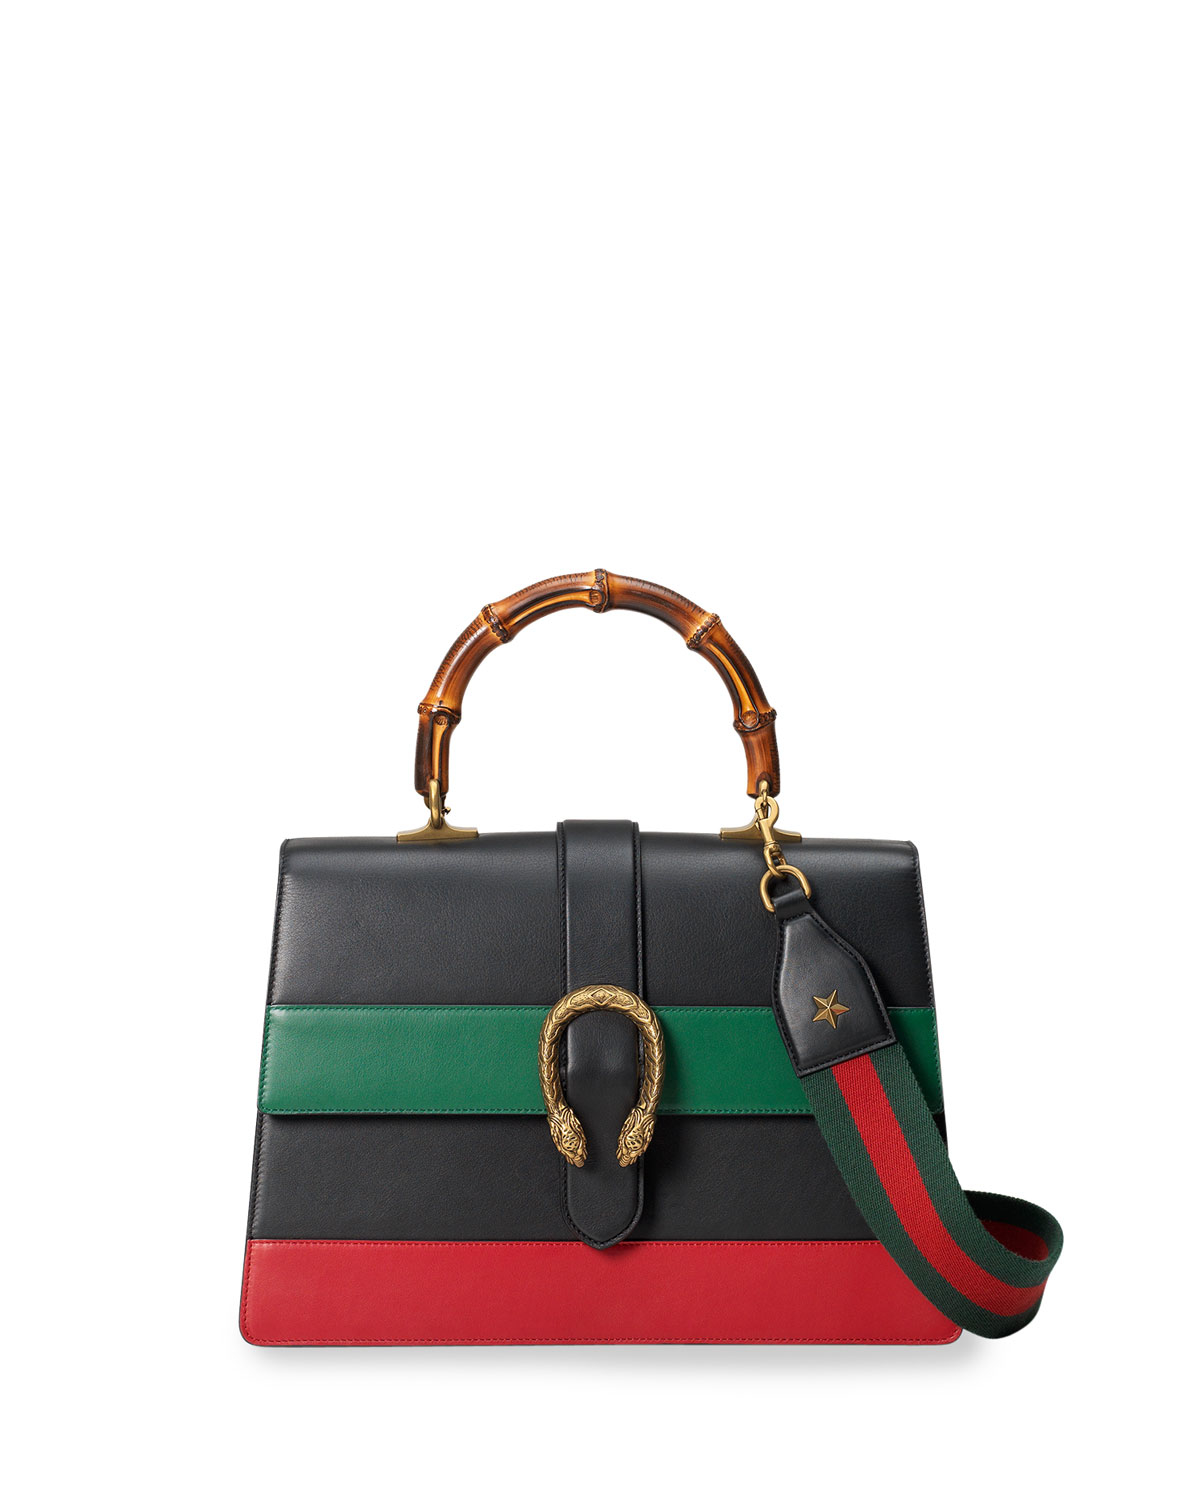 Lyst - Gucci Dionysus Striped Bamboo Top-Handle Bag in Black 181a14b38d39d